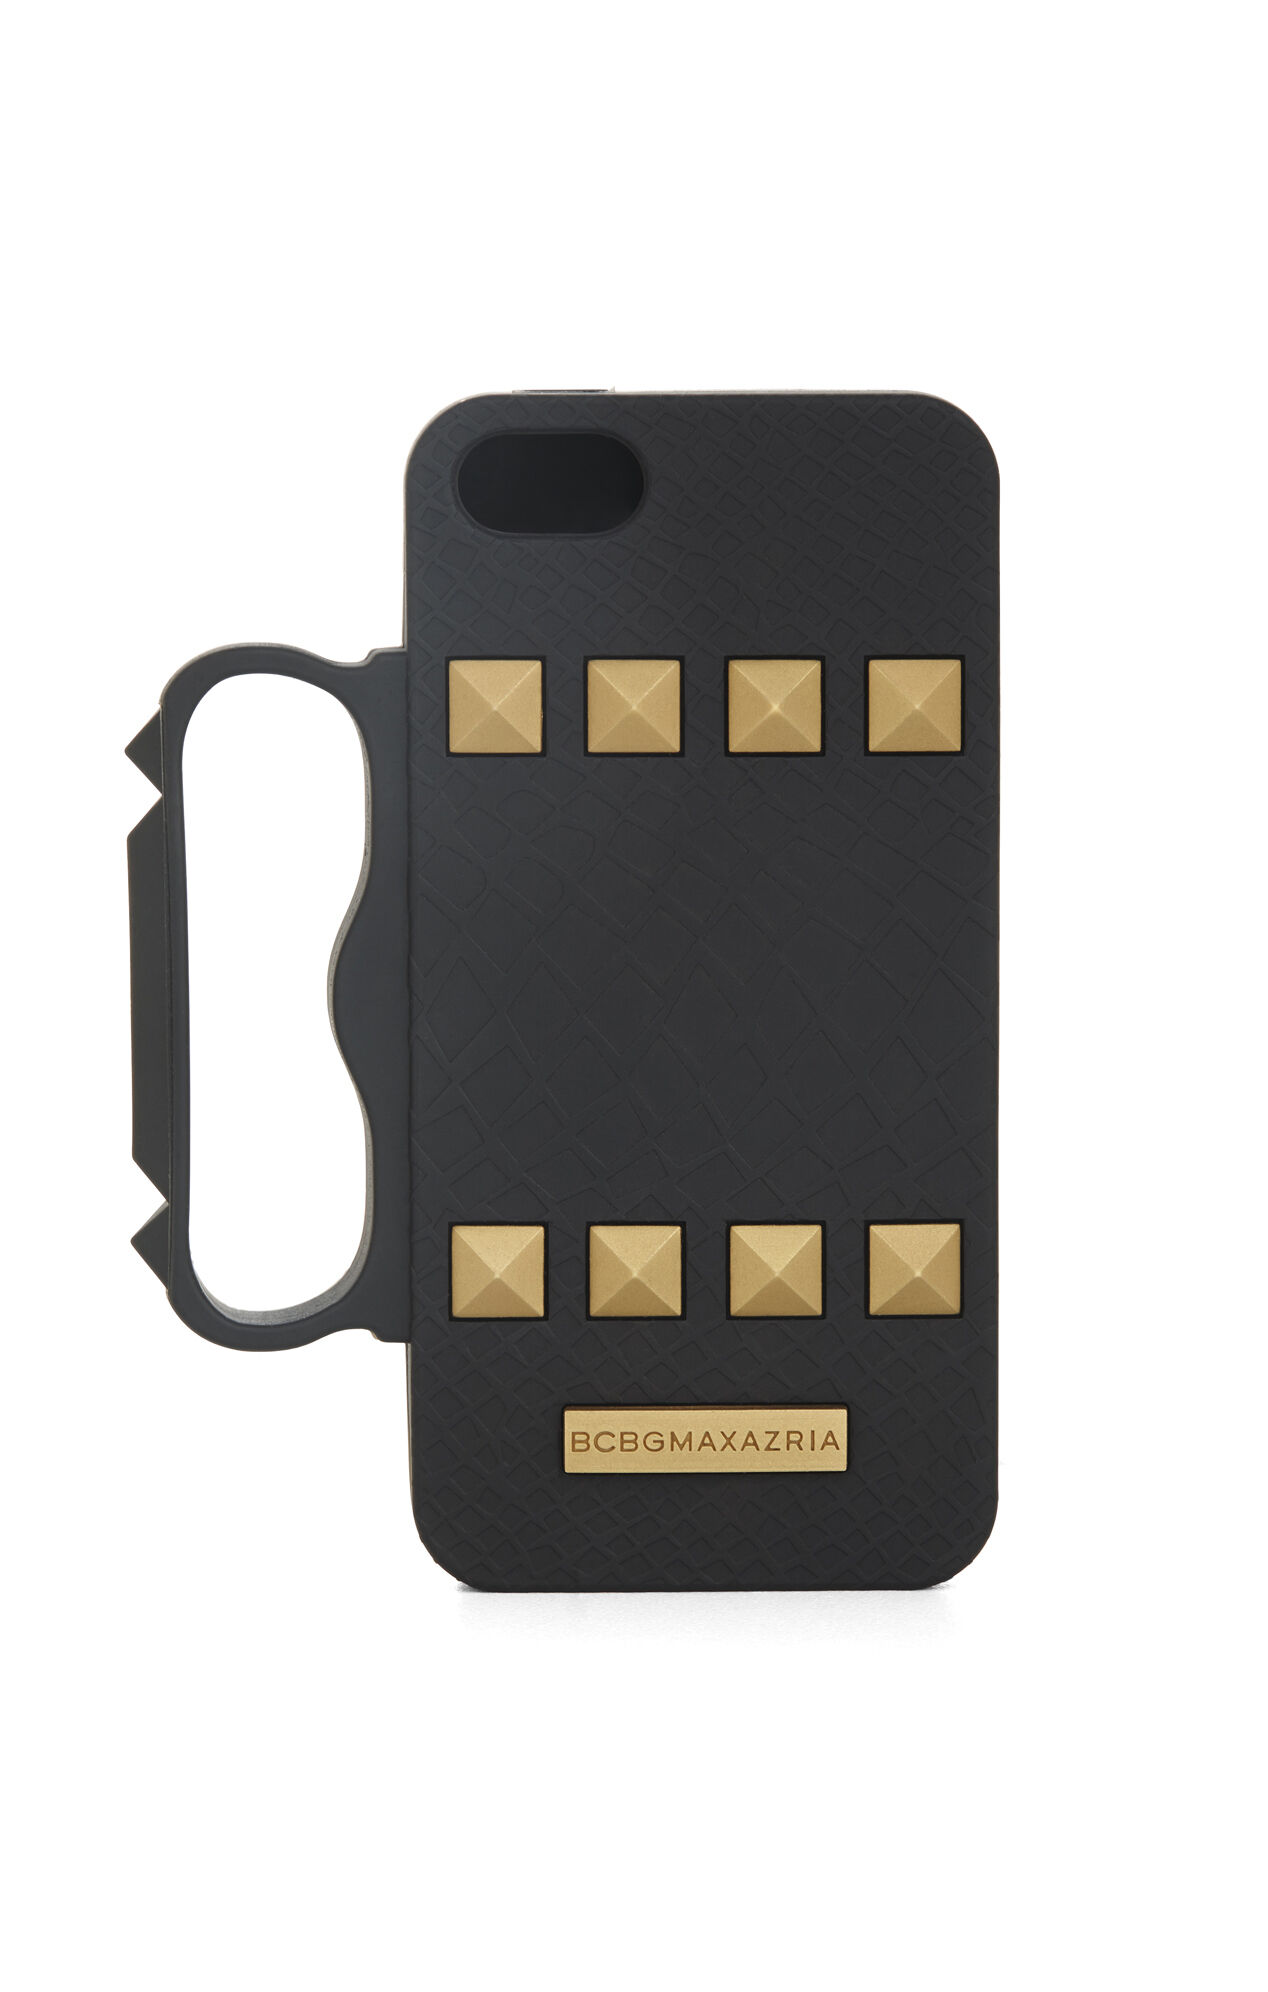 Knuckle-Duster iPhone 5 Case